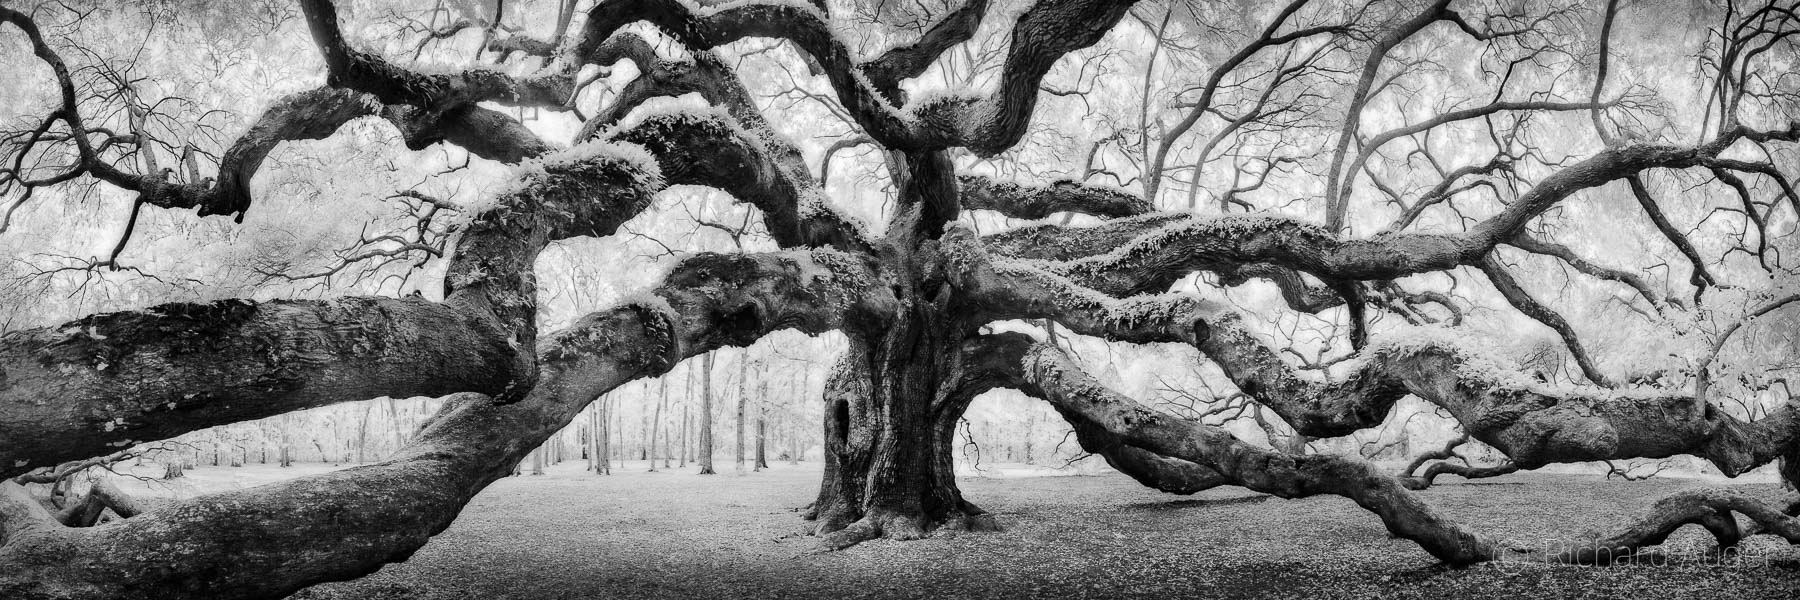 Angel Oak, South Carolina, Oak Tree, Spooky, forest, photographer, landscape, photograph, black and white, panorama